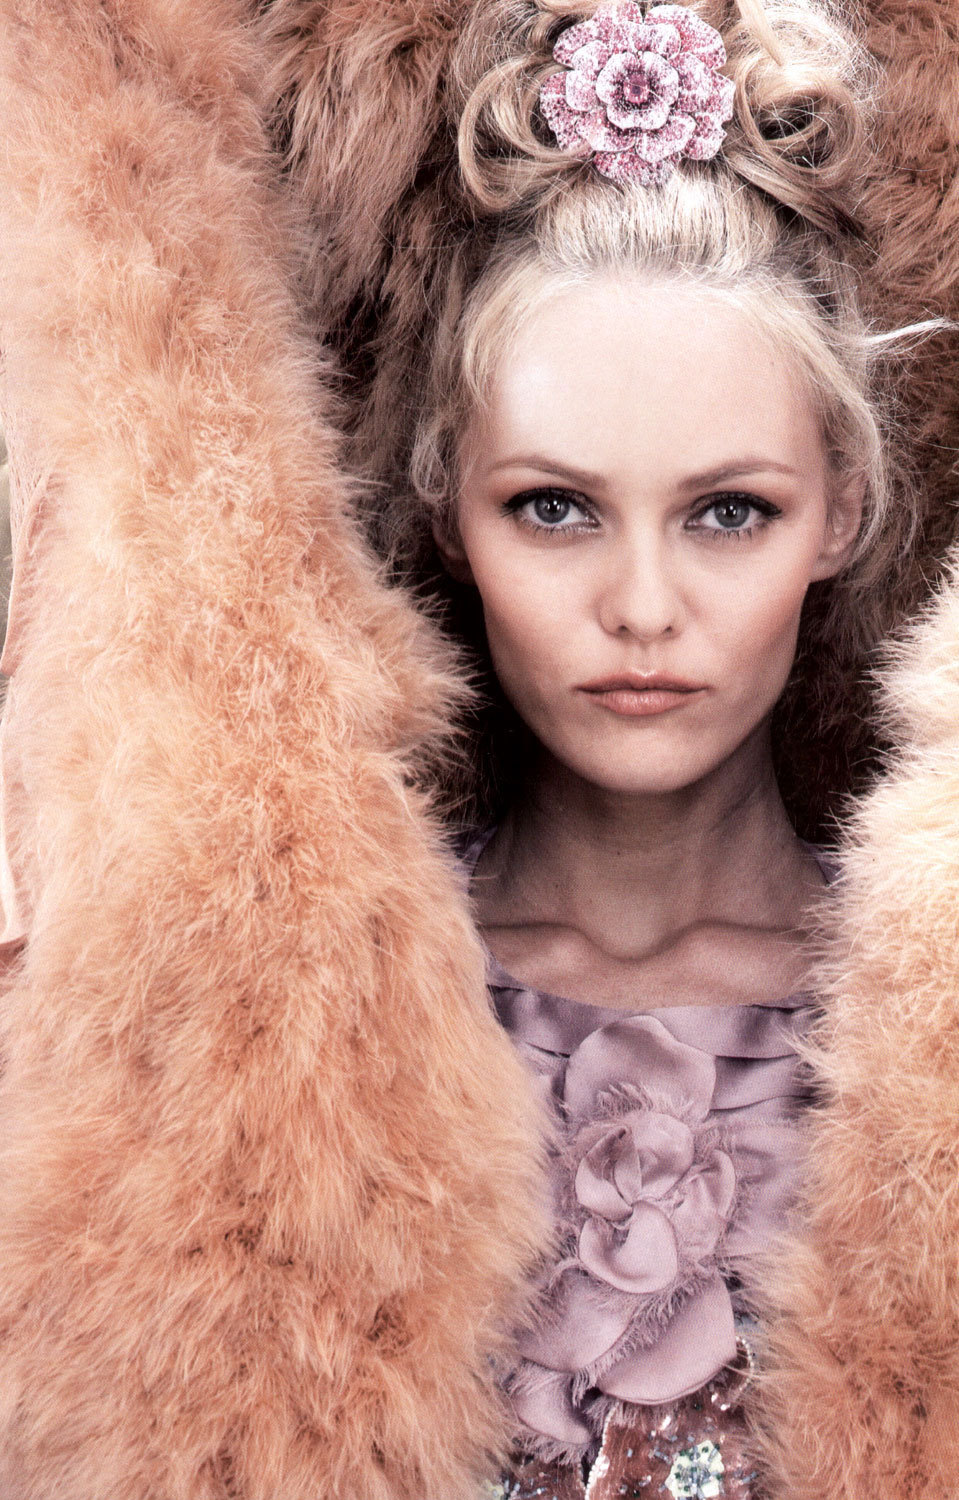 Vanessa Paradis images klvanchanel1 HD wallpaper and background photos ... Vanessa Paradis